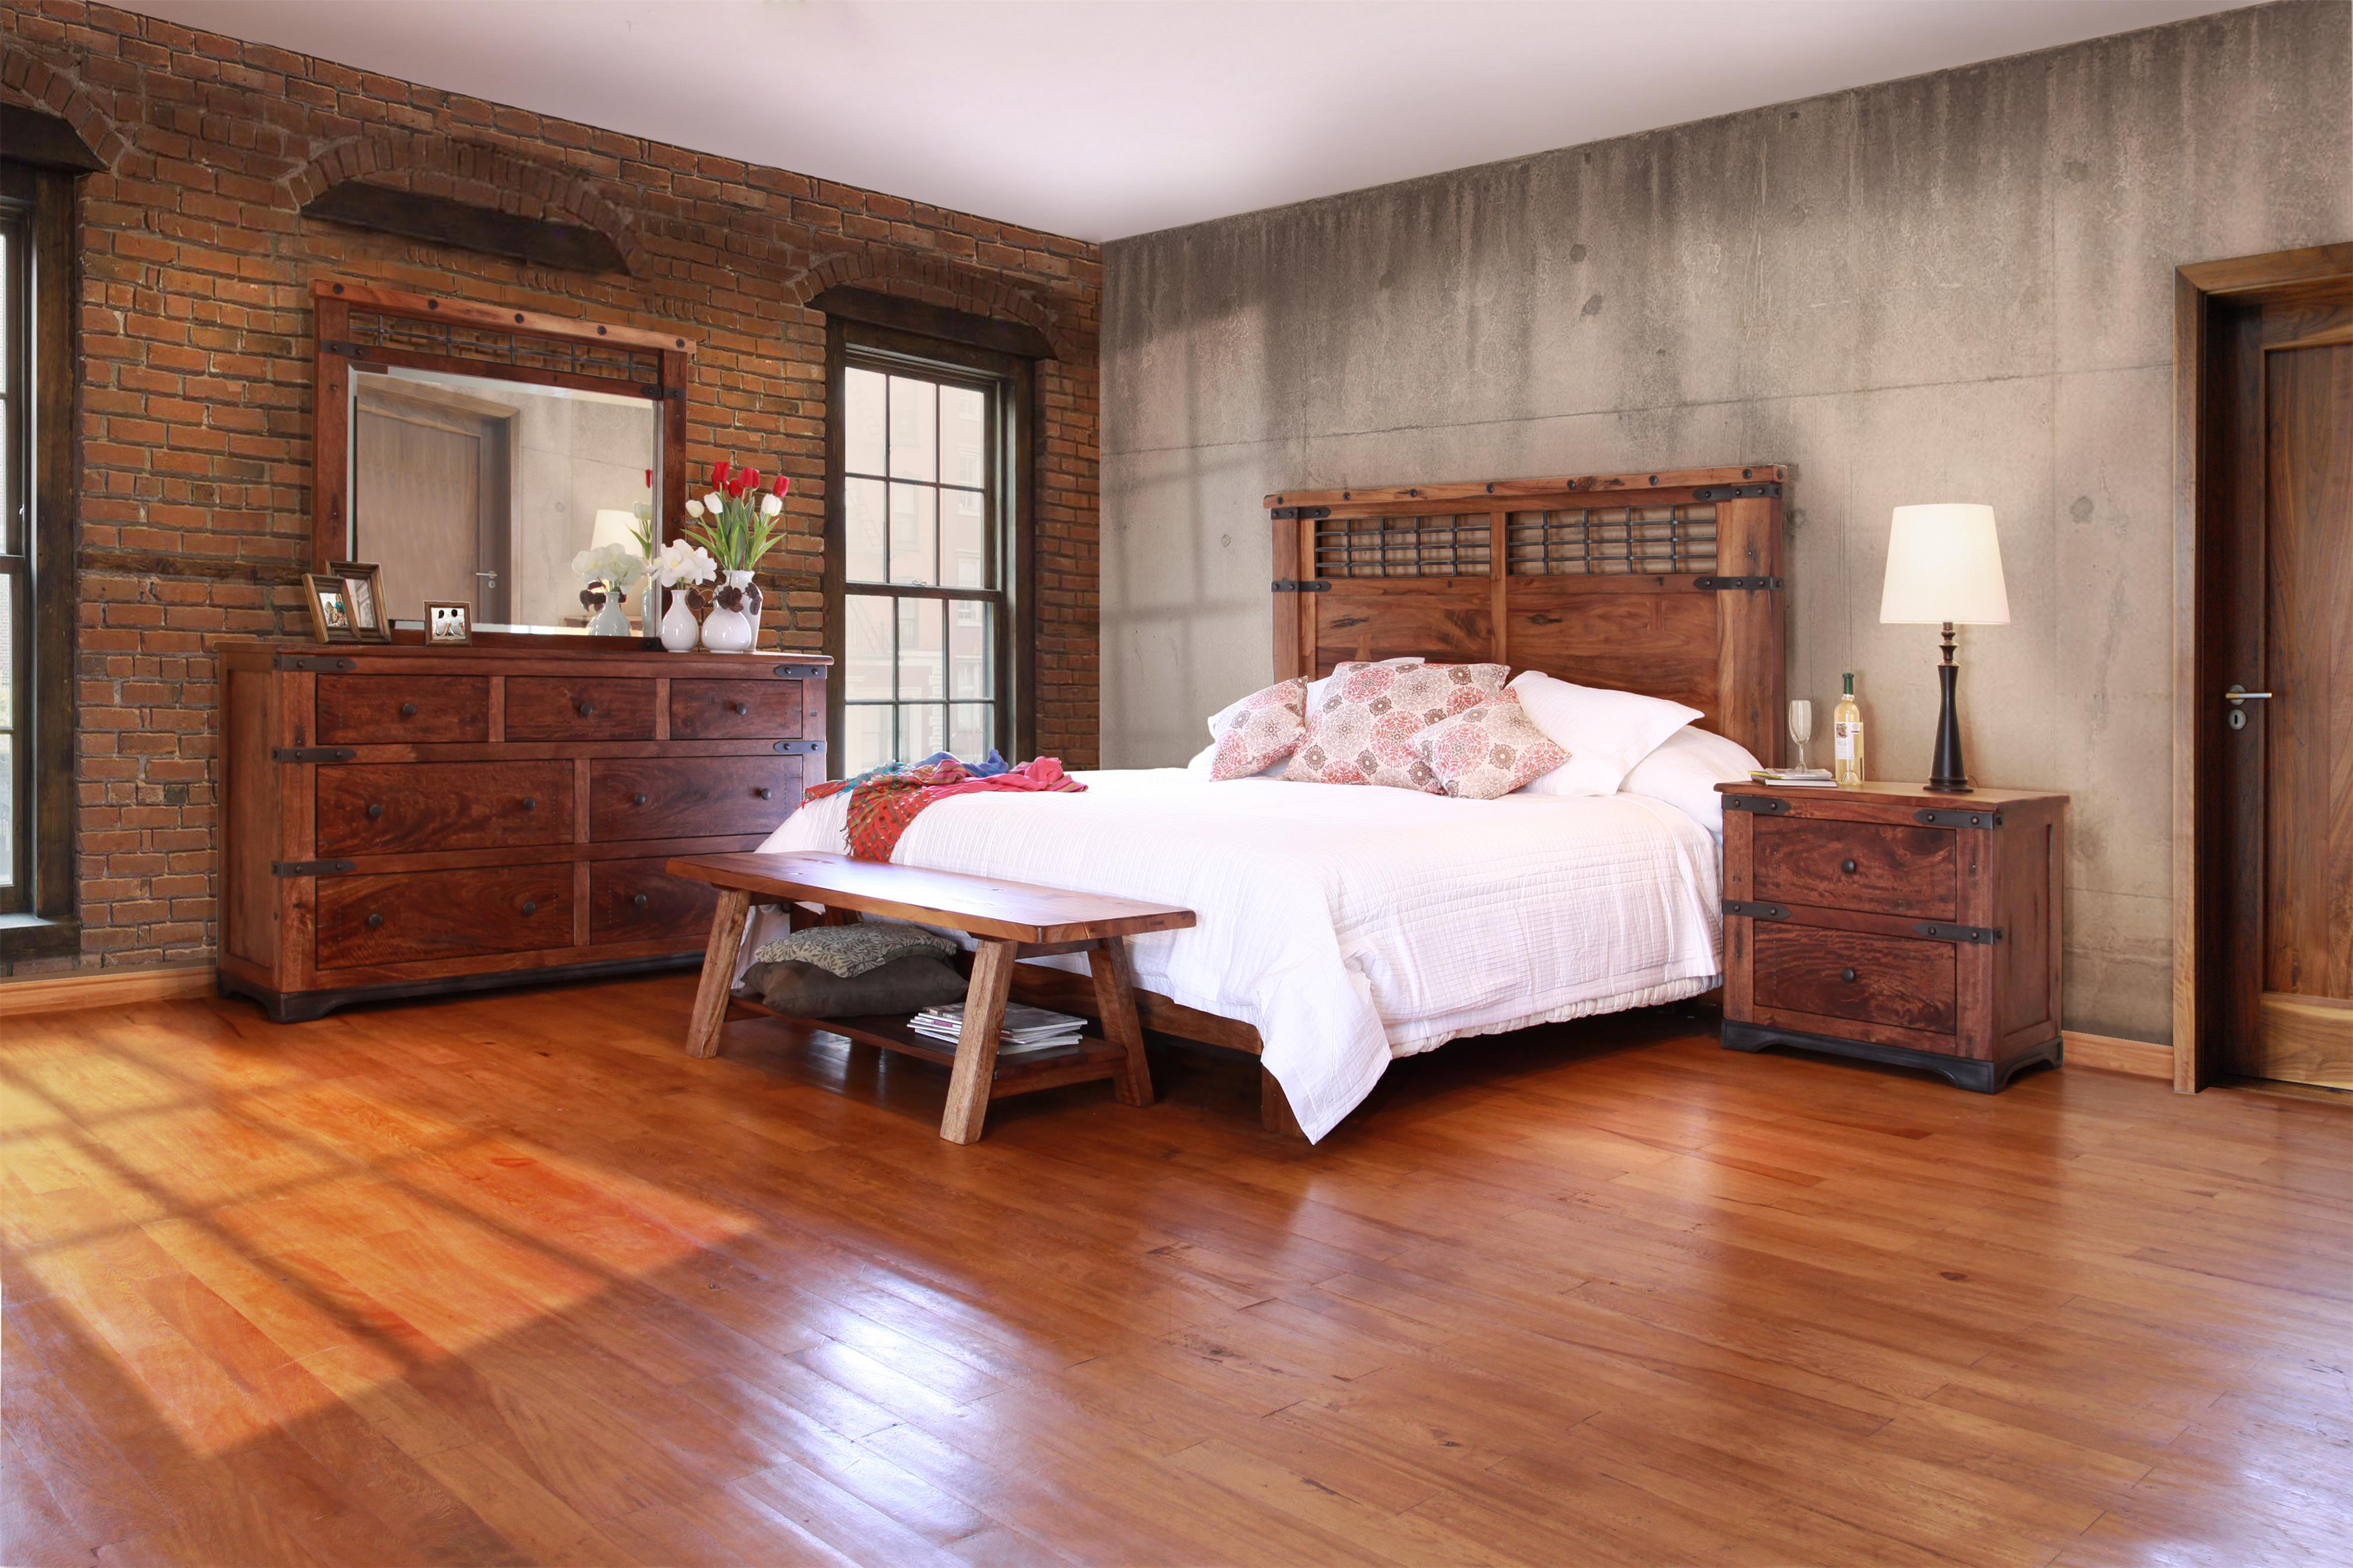 Parota King Bedroom Group By International Furniture Direct At Lindy S Furniture Company